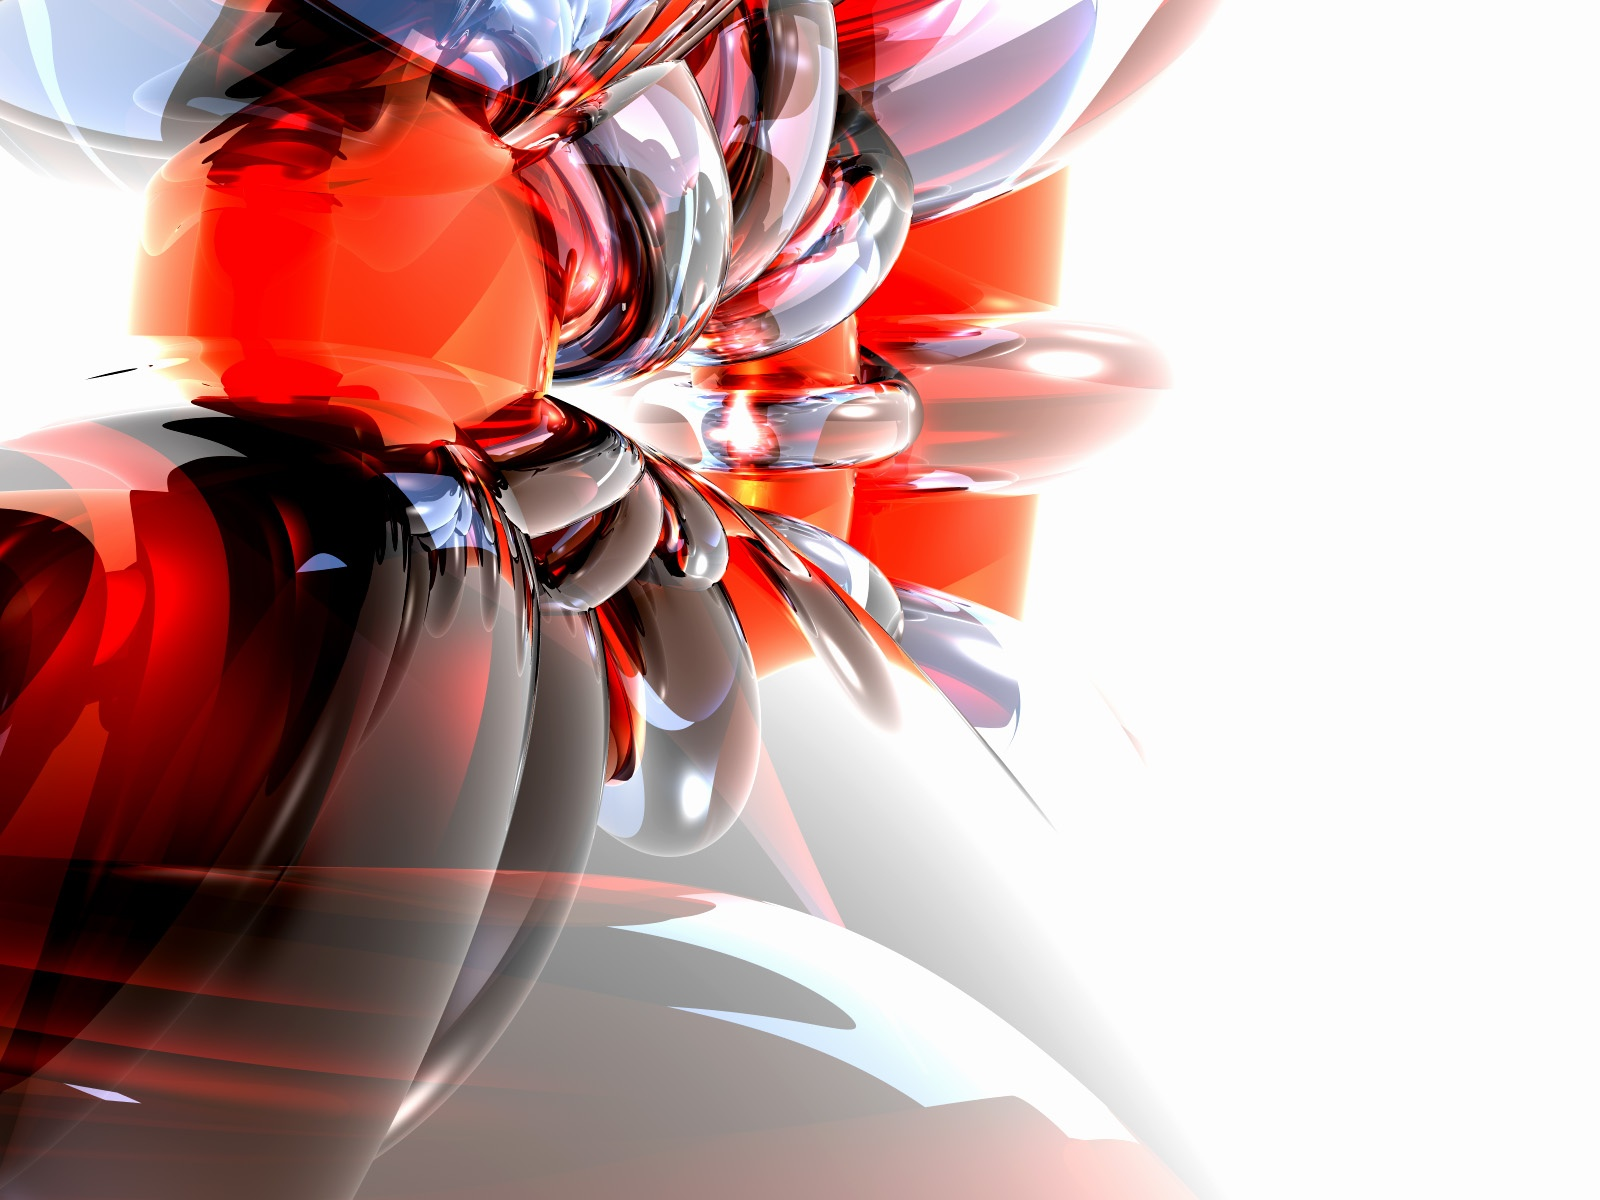 Glass 3d Hd Wallpapers 1080p: Real Wallpapers: 3D Abstract Glass Wallpaper